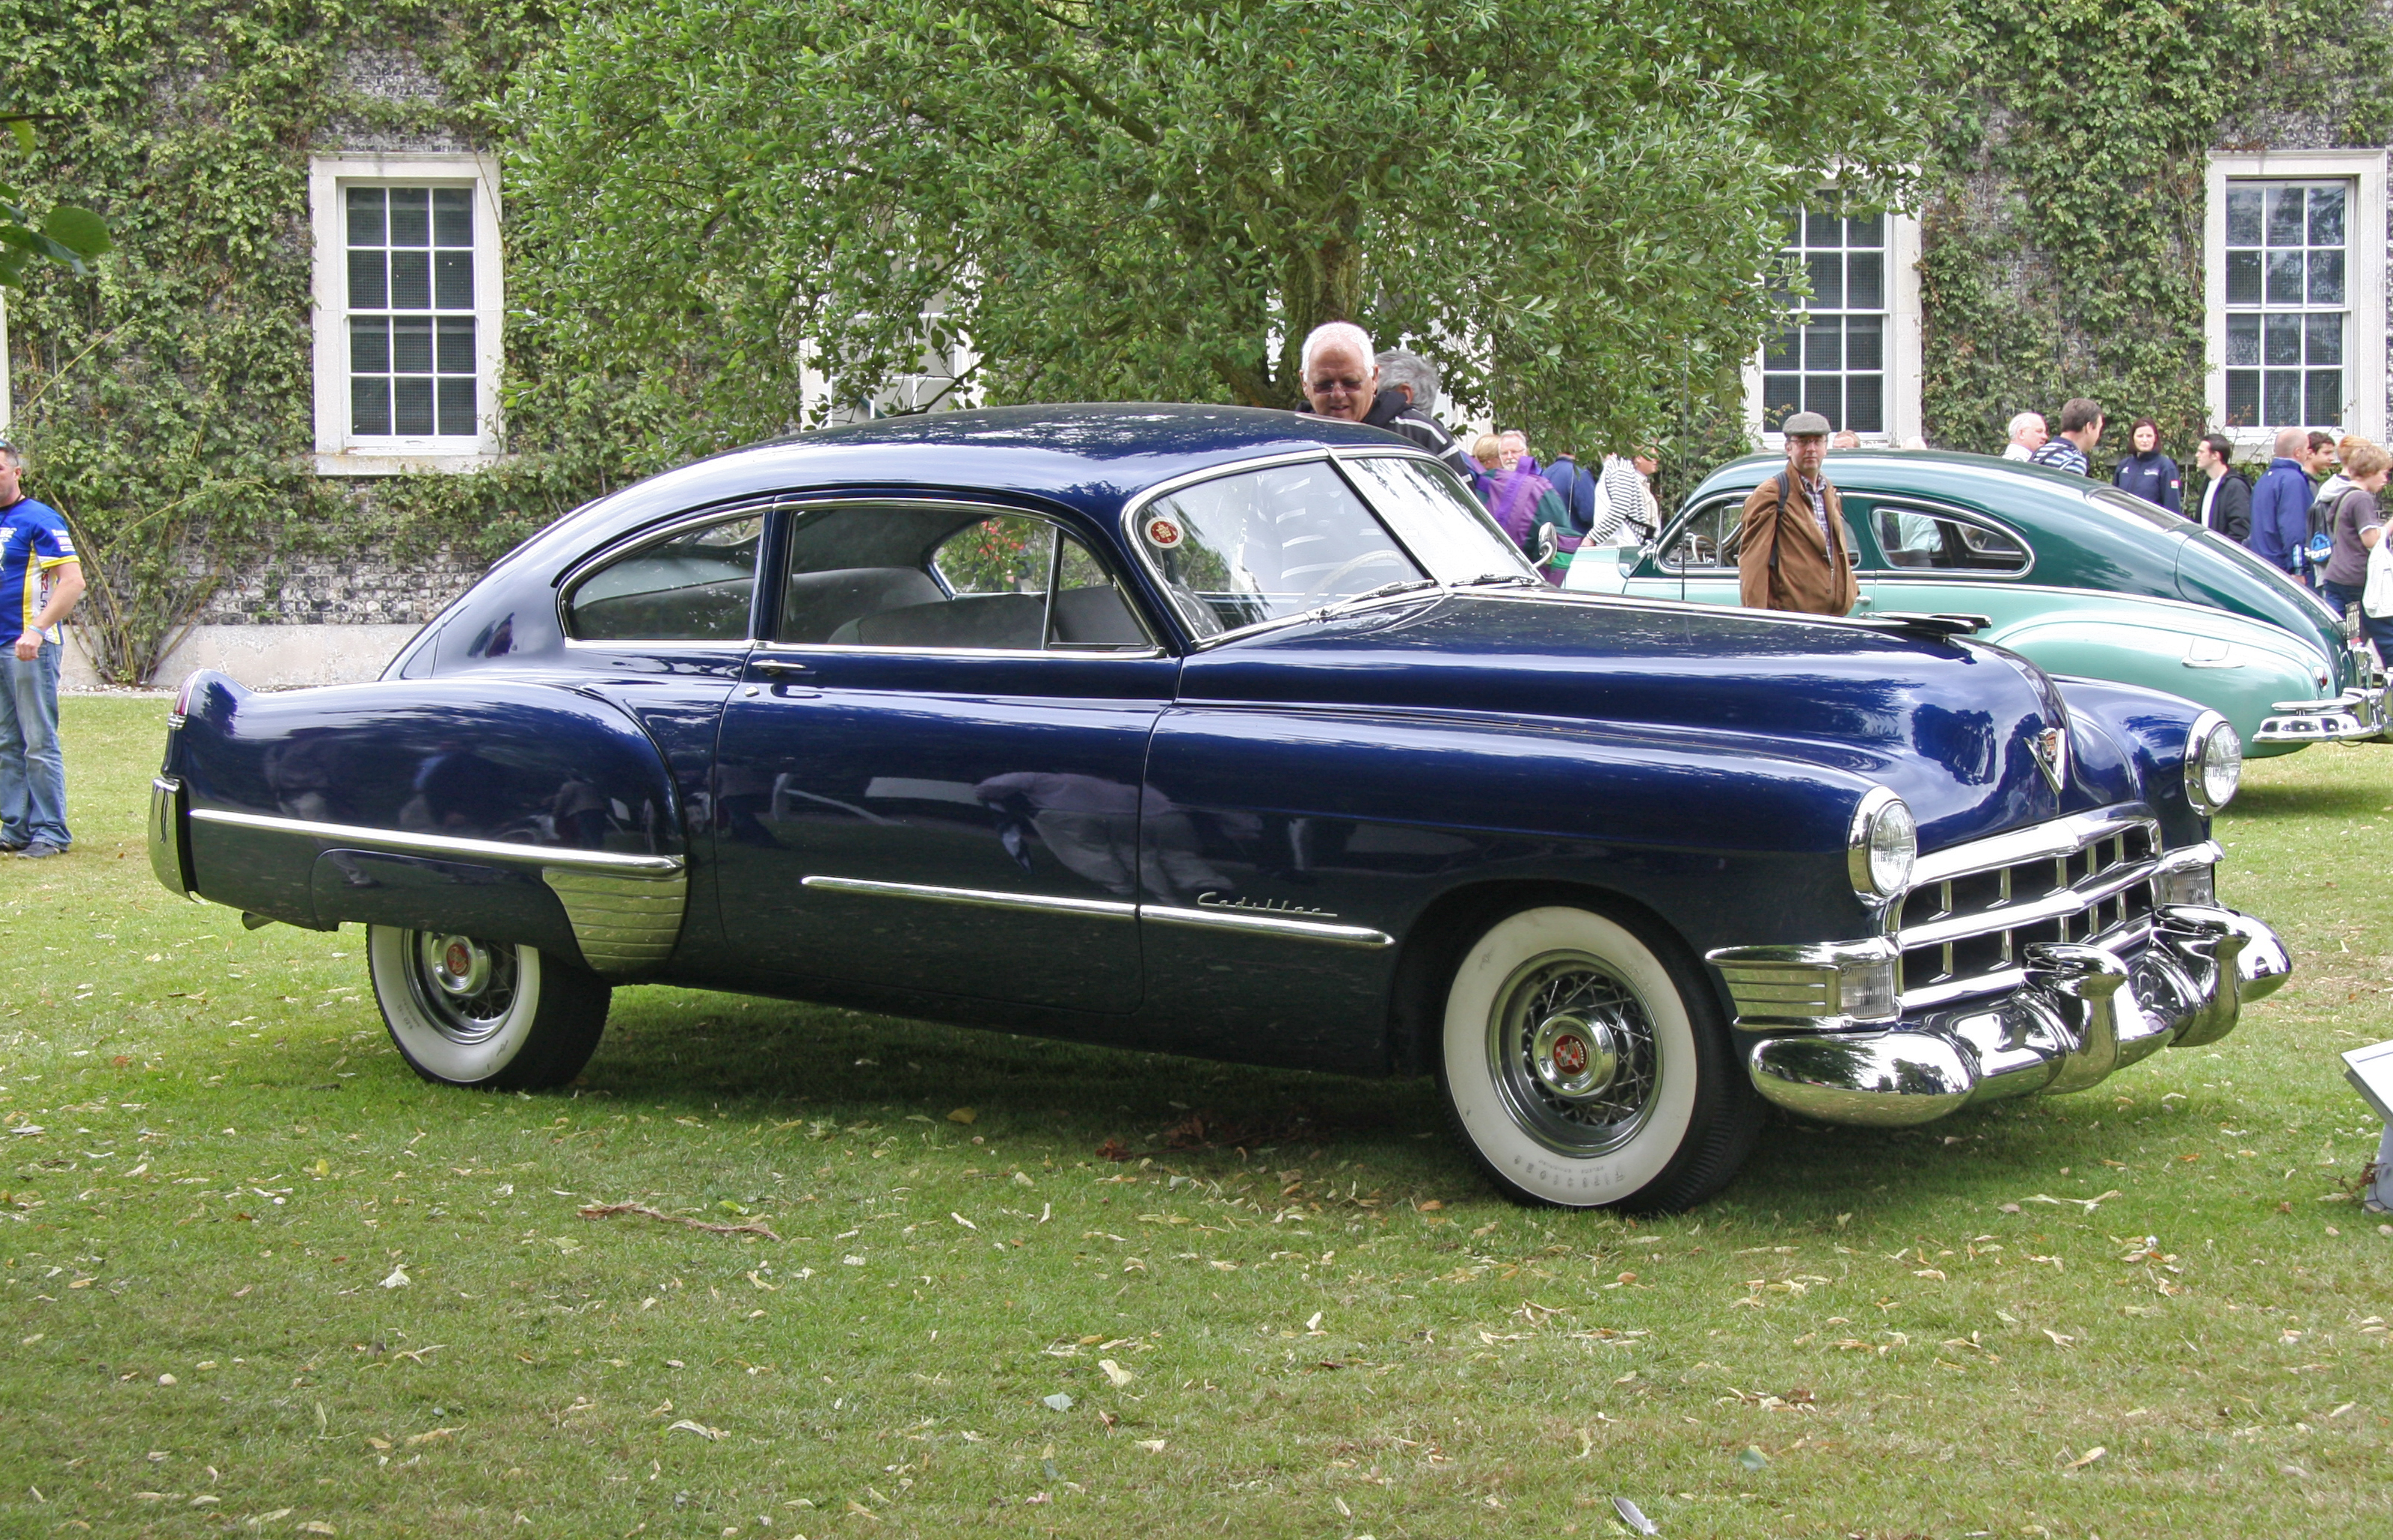 My first bloggy experience 1950 cadillac series 61 2 door for 1949 cadillac fastback series 61 2 door